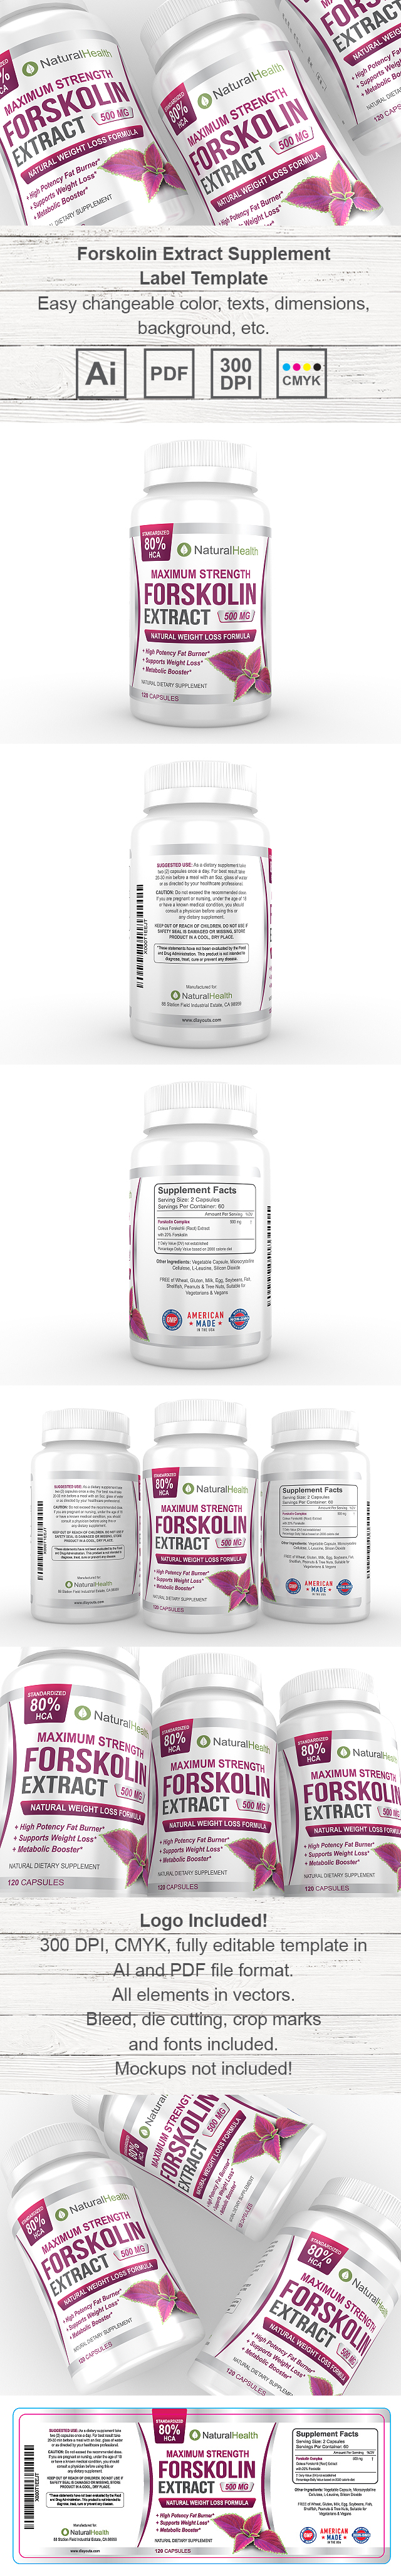 Forskolin Extract Supplement Label Template HttpWwwDlayouts